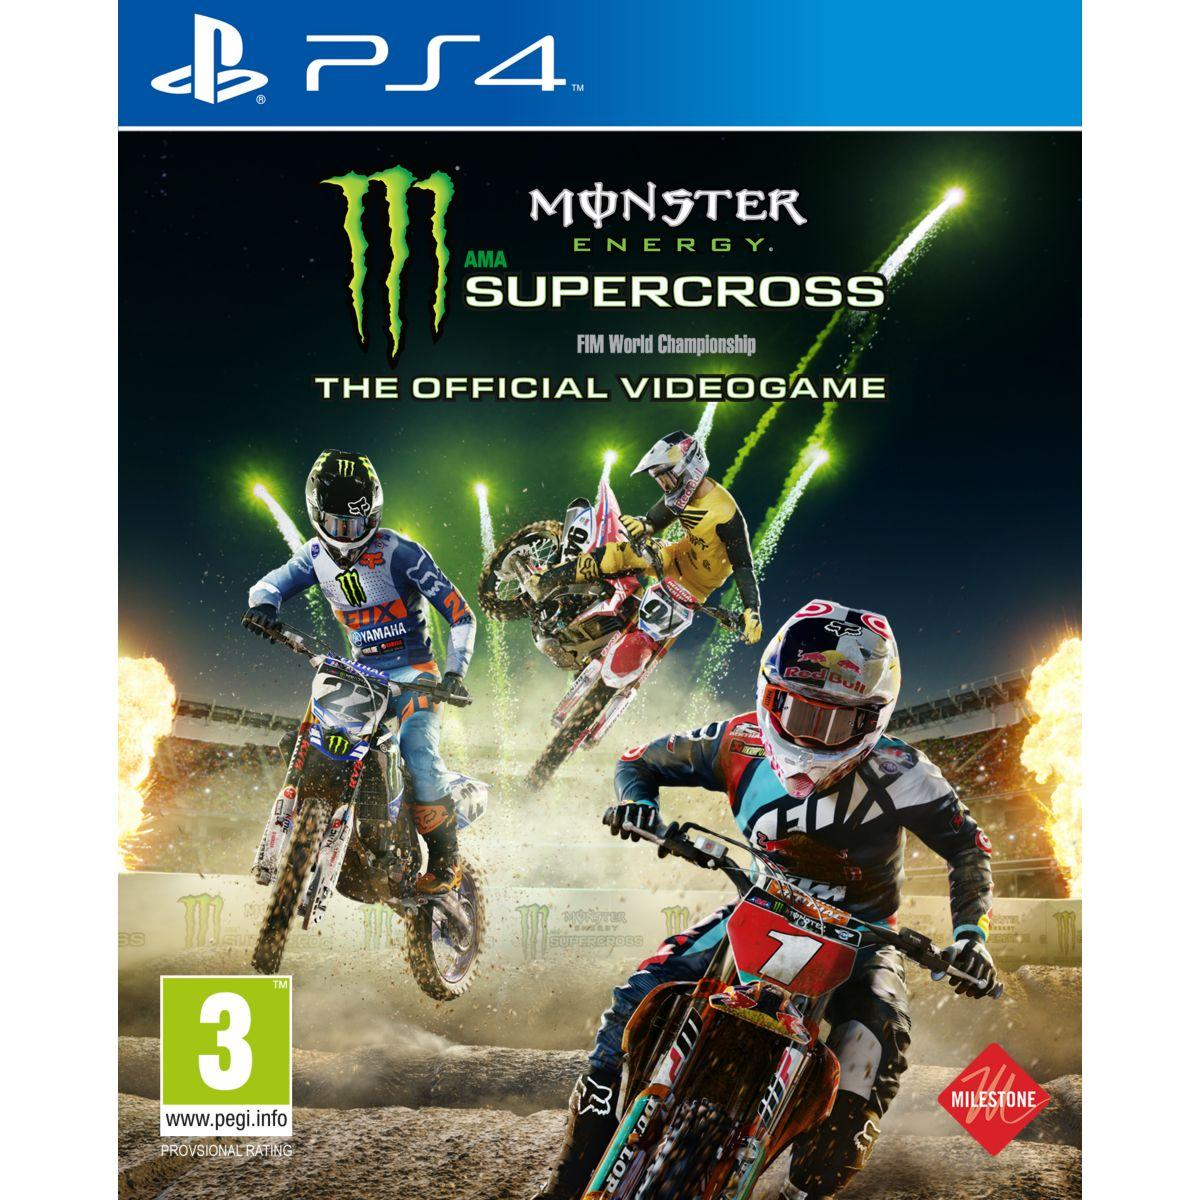 Jeu ps4 bigben monster energy supercross - 2% de remise imm�diate avec le code : priv2 (photo)